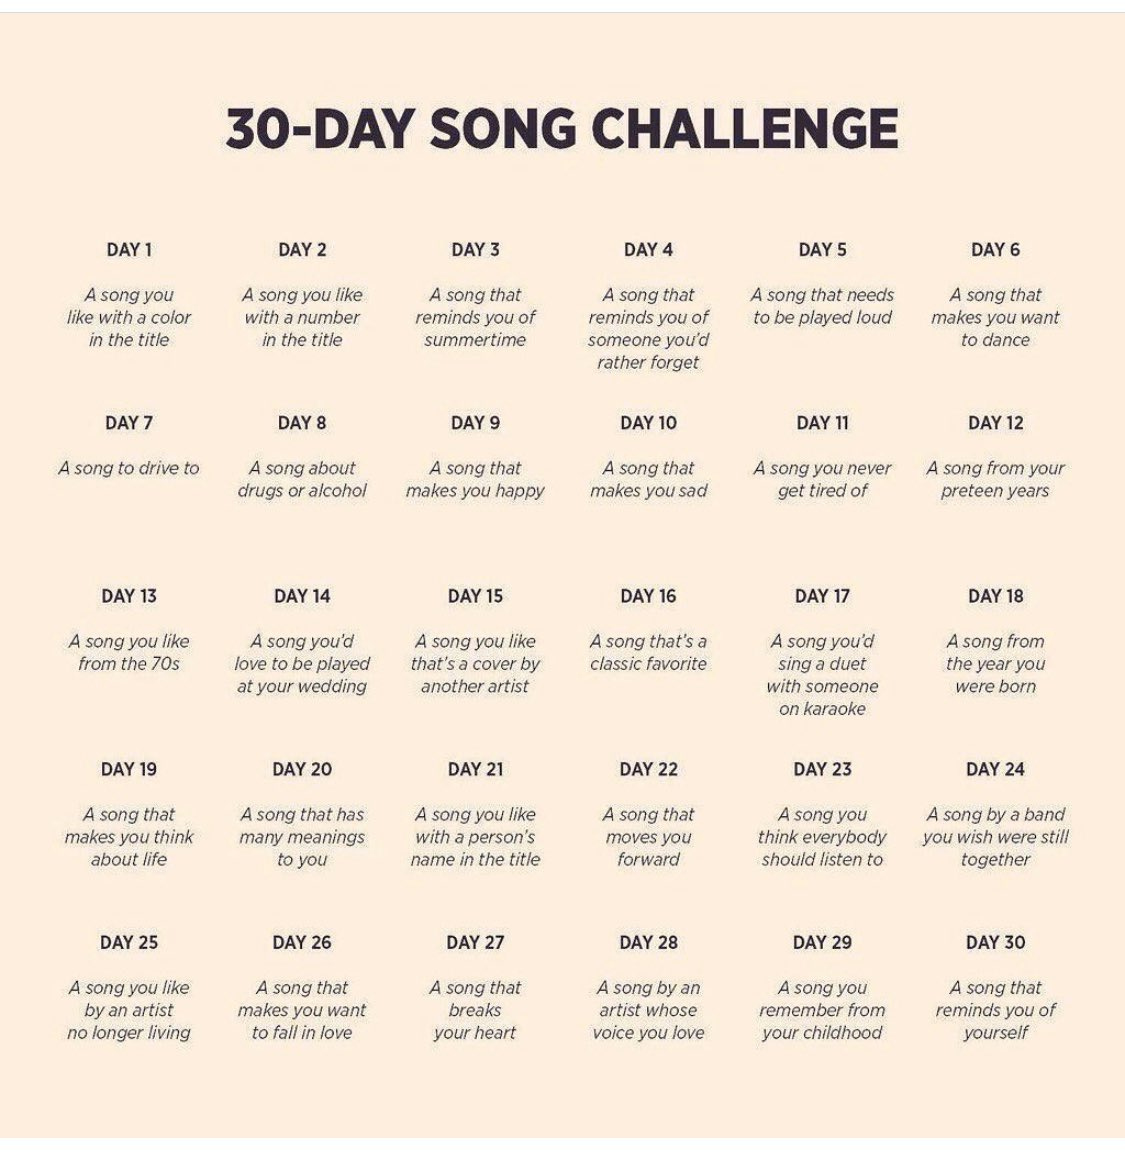 I have started this today as music is really important to me more so  now than ever. I'm starting with a tune too. Purple Rain by Prince!  #musicfun#positive pic.twitter.com/eFk69XrYUm